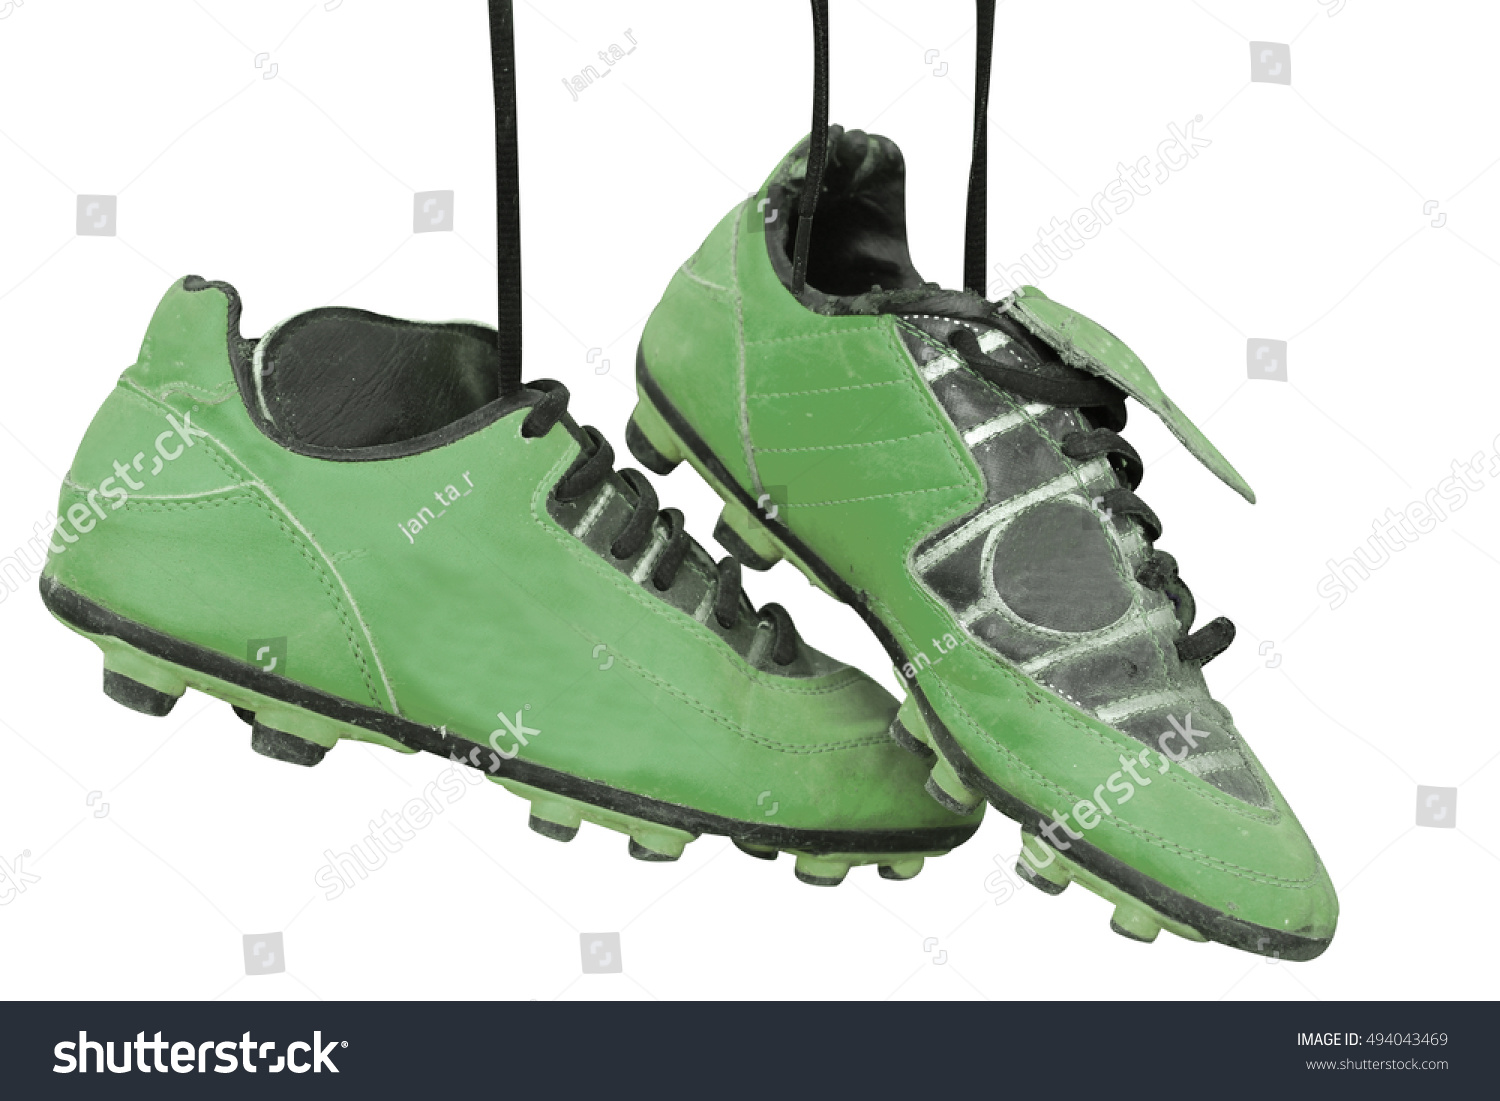 5e40067cb Pair Old Football Boots On White Stock Photo (Edit Now) 494043469